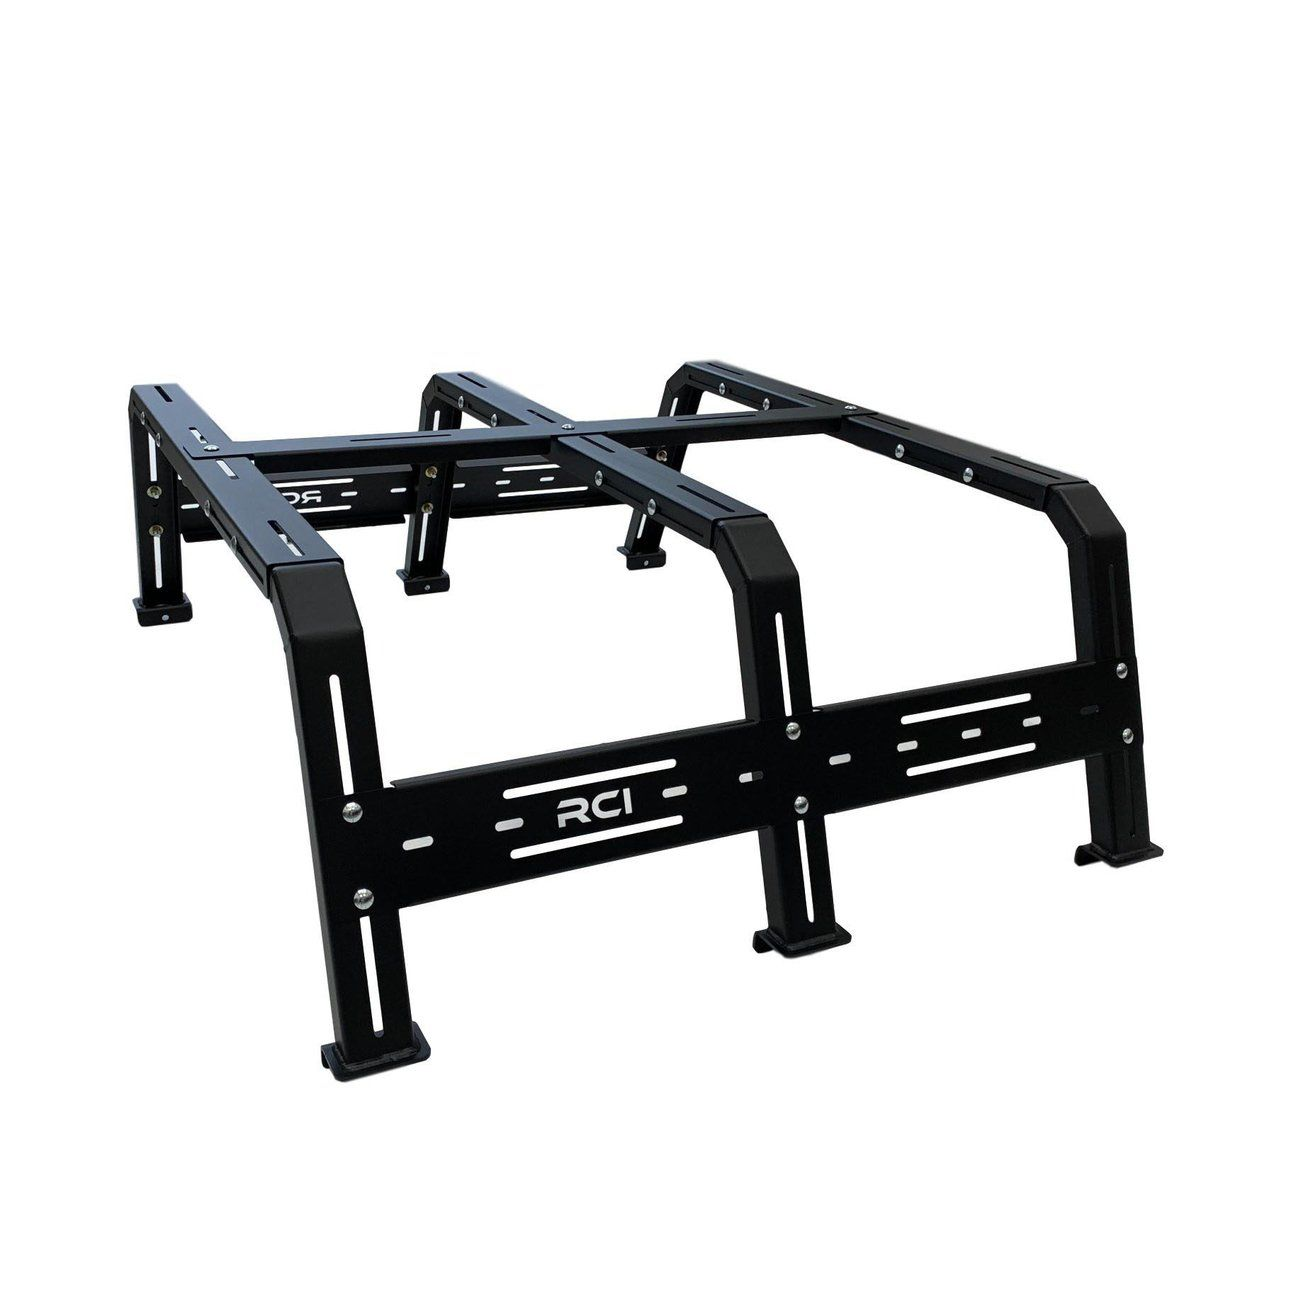 RCI Cab Height Adjustable Bed Rack for 20052020 Toyota